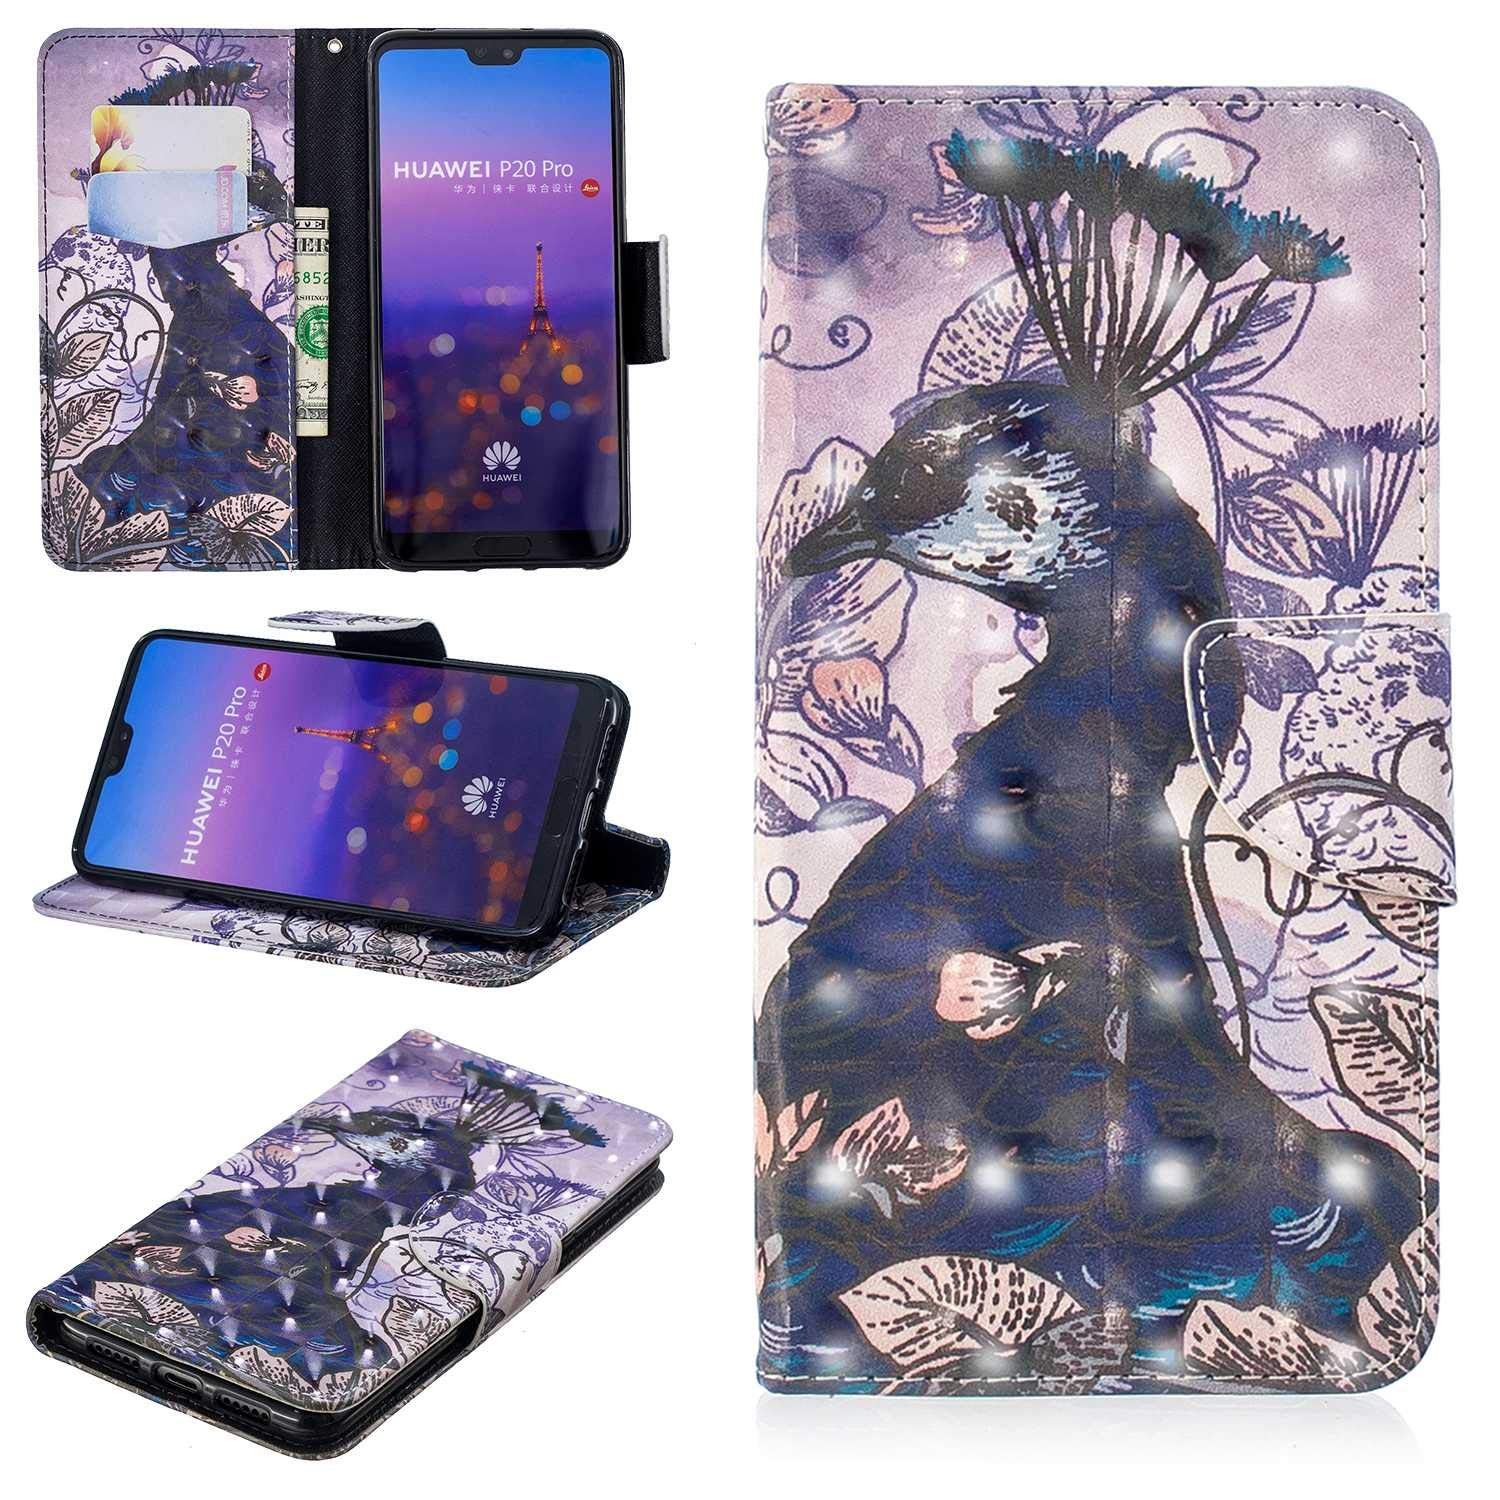 CUSKING Huawei P20 Pro Case, Premium 3D Design Wallet Case Stand Flip Case with Card Holders and Magnetic Closure, Multi-Functional Shockproof Case for Huawei P20 Pro - Peacock by CUSKING (Image #1)